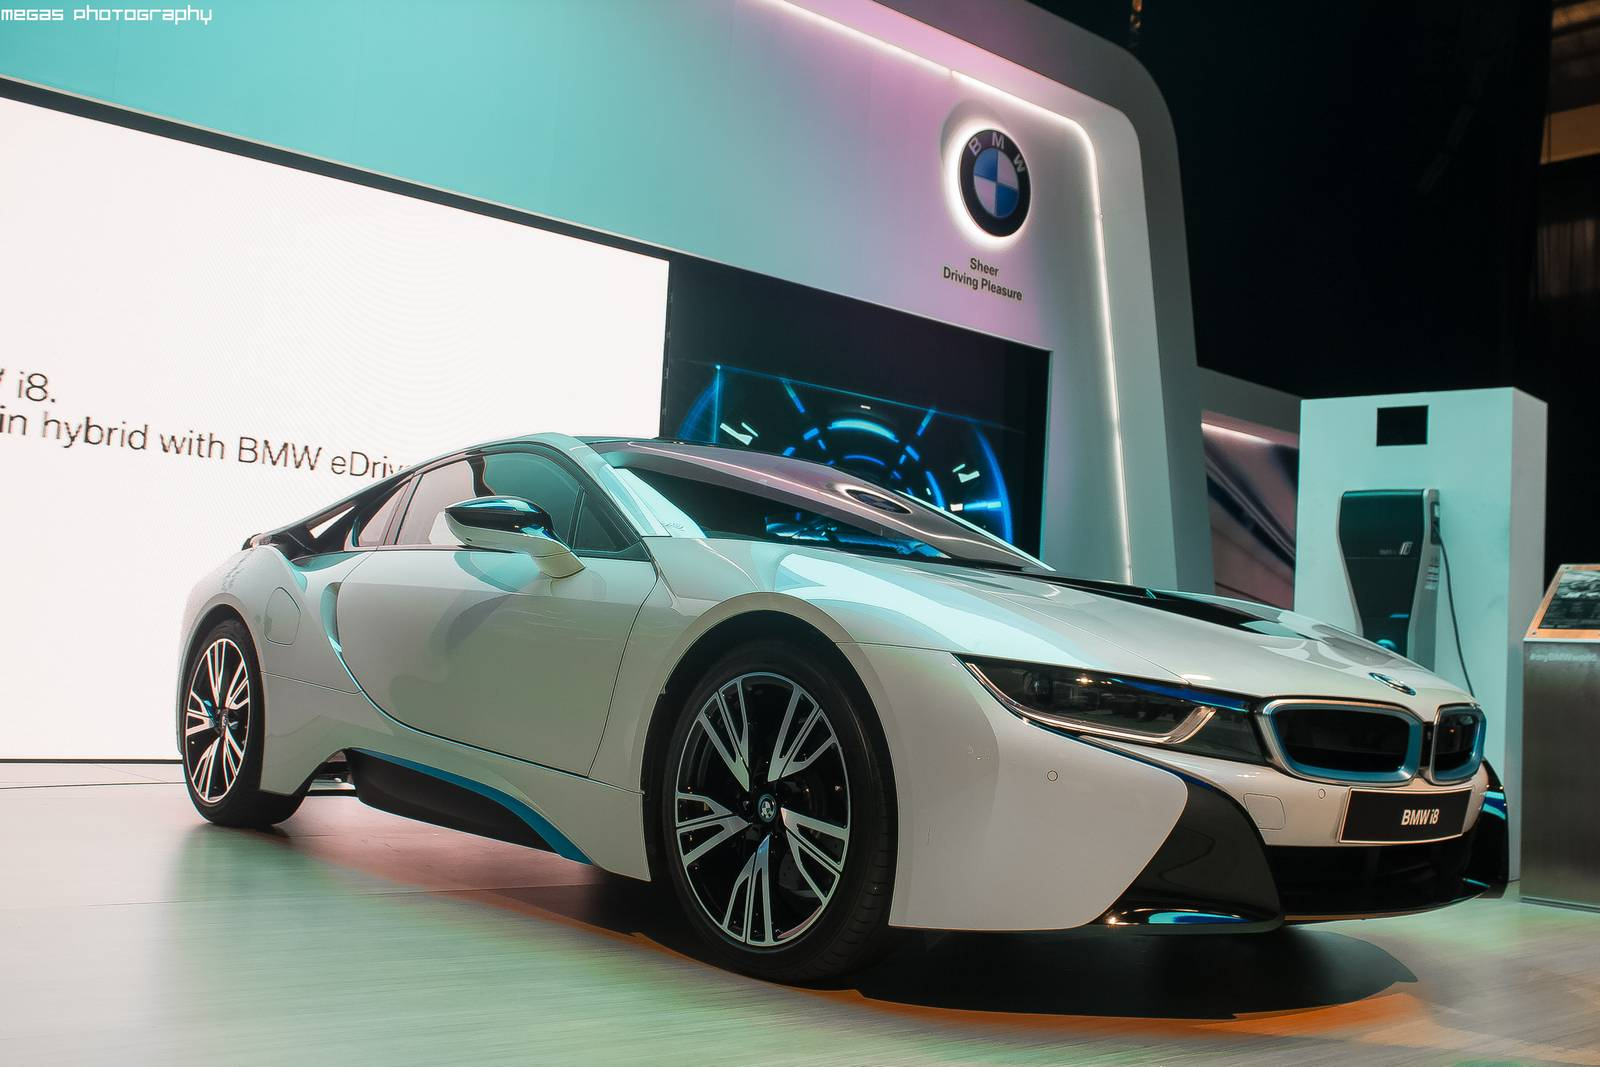 bmw i8 launched in malaysia alongside bmw 328 homage gtspirit. Black Bedroom Furniture Sets. Home Design Ideas